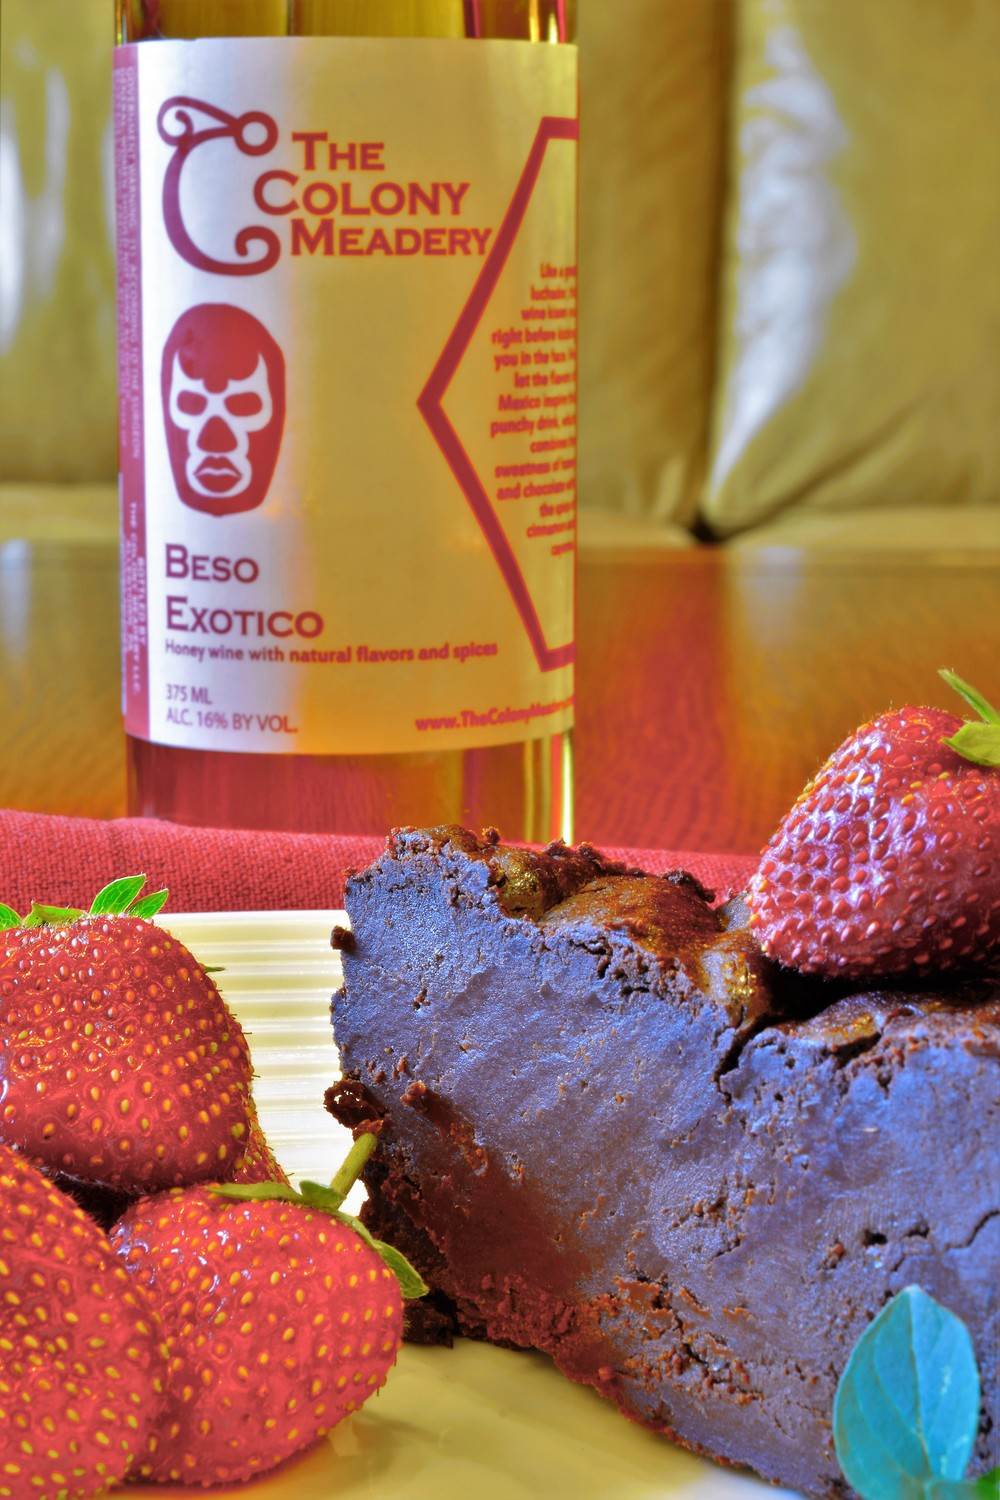 mead paleo chocolate cake